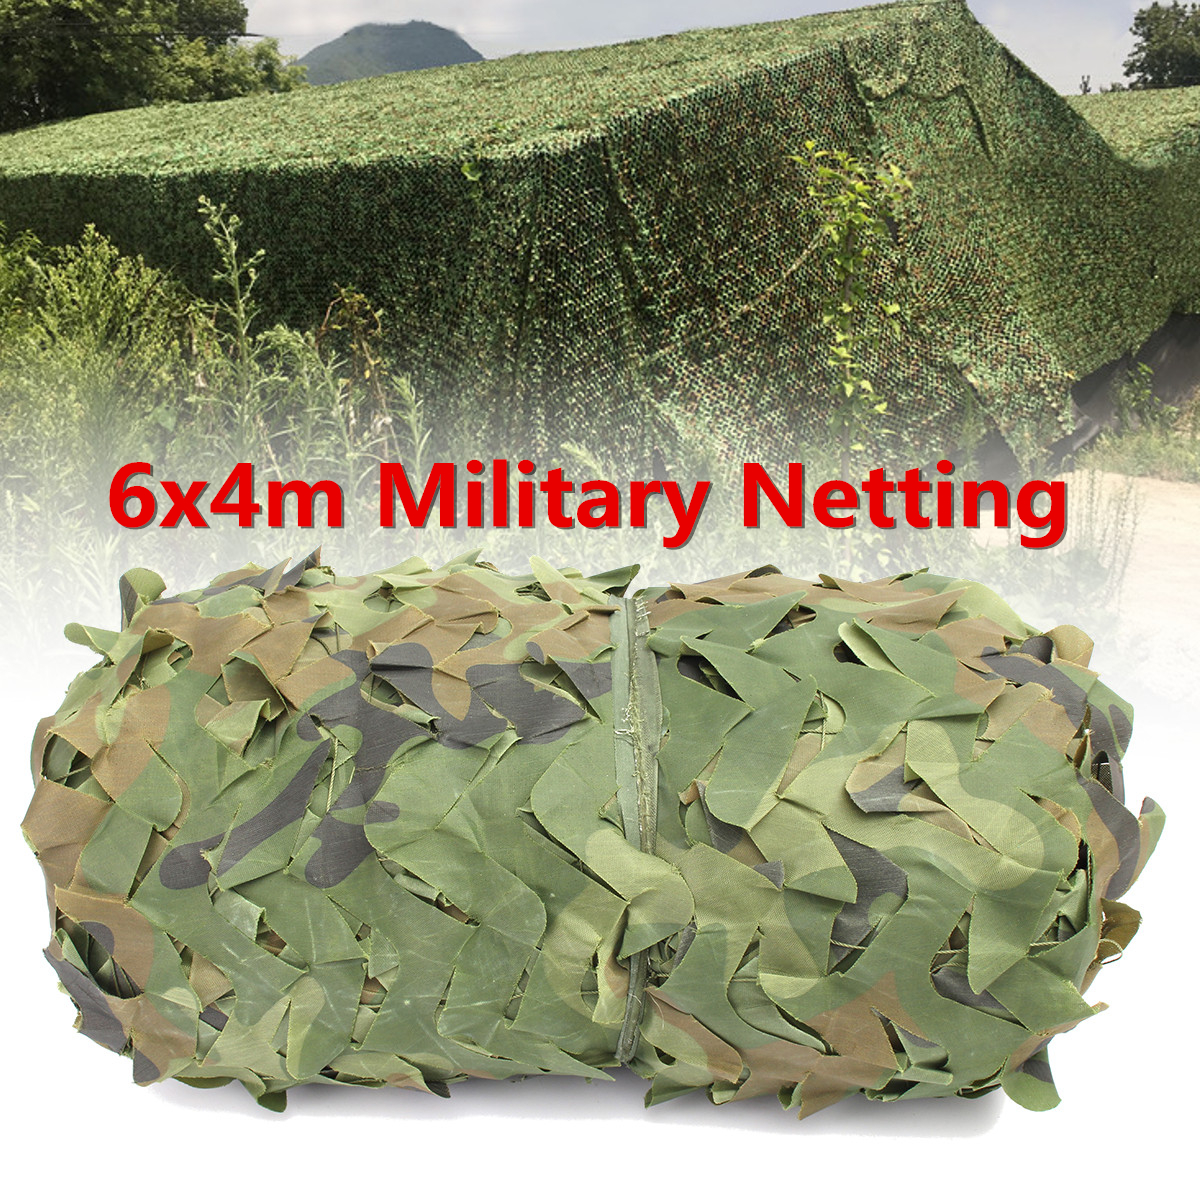 6X4m Outdoor Desert Woodland Camouflage Netting Military Army Camo Hunting Hide Camp Cover Net Sun Shelter 4mx2m 5mx2m hunting military camouflage nets woodland army camo netting camping sun sheltertent shade sun shelter